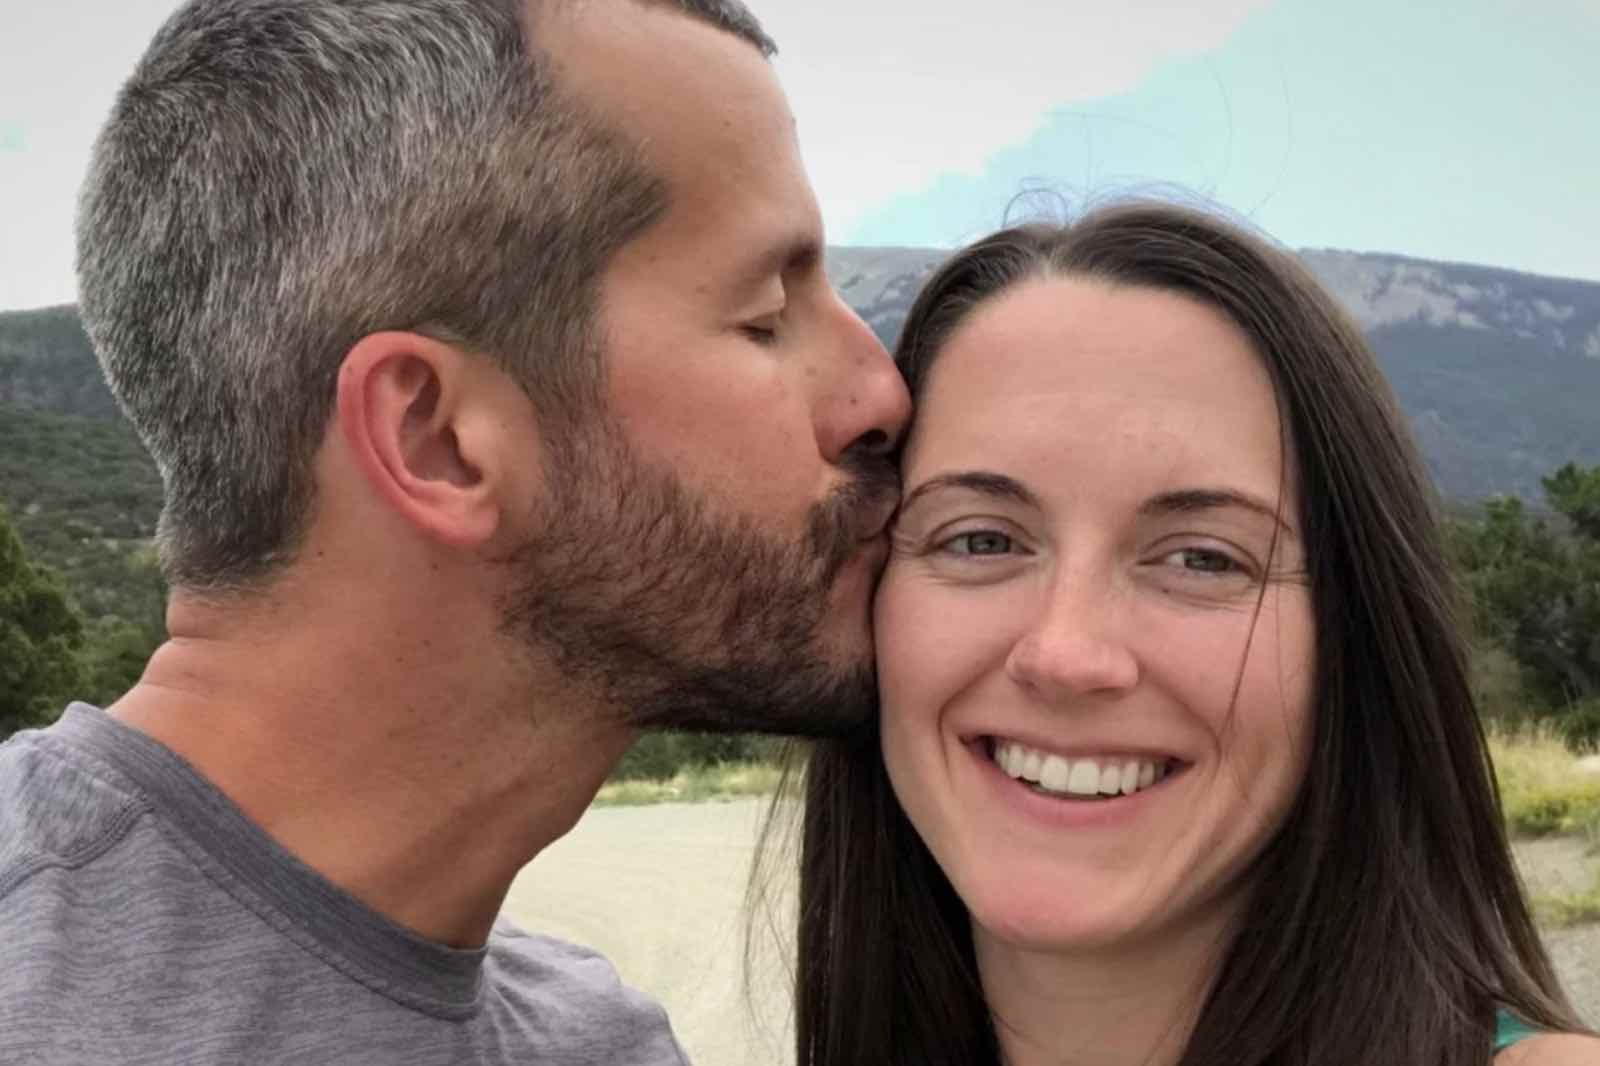 Before he killed his pregnant wife Shanann, Chris Watts was telling her lie after lie to trick her into thinking he was happy.